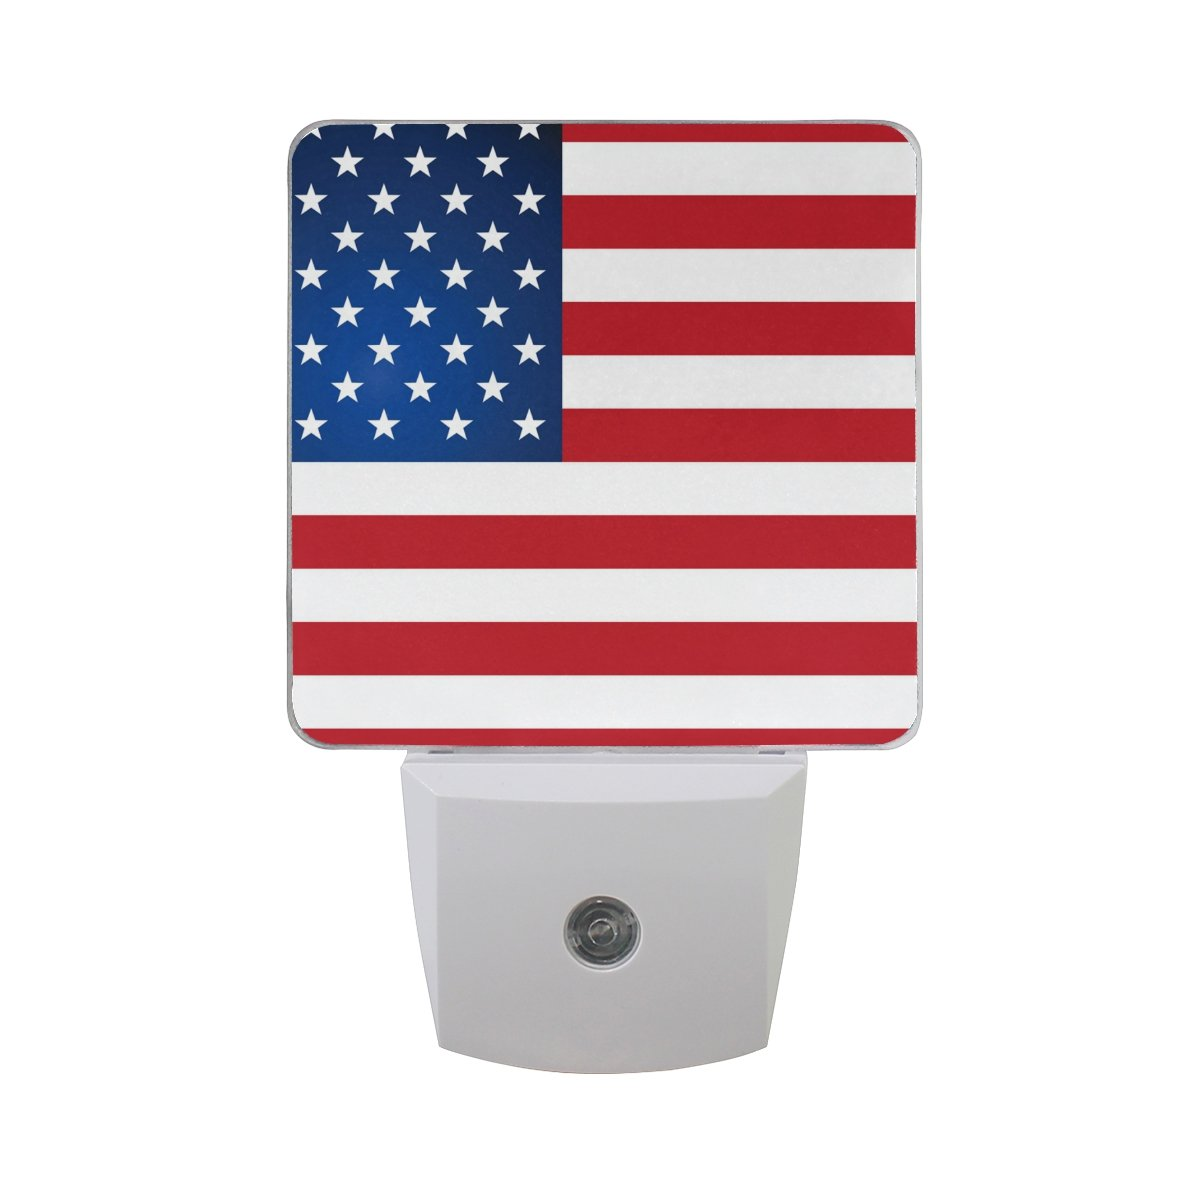 JOYPRINT Led Night Light Independence Day American USA Flag, Auto Senor Dusk to Dawn Night Light Plug in for Kids Baby Girls Boys Adults Room